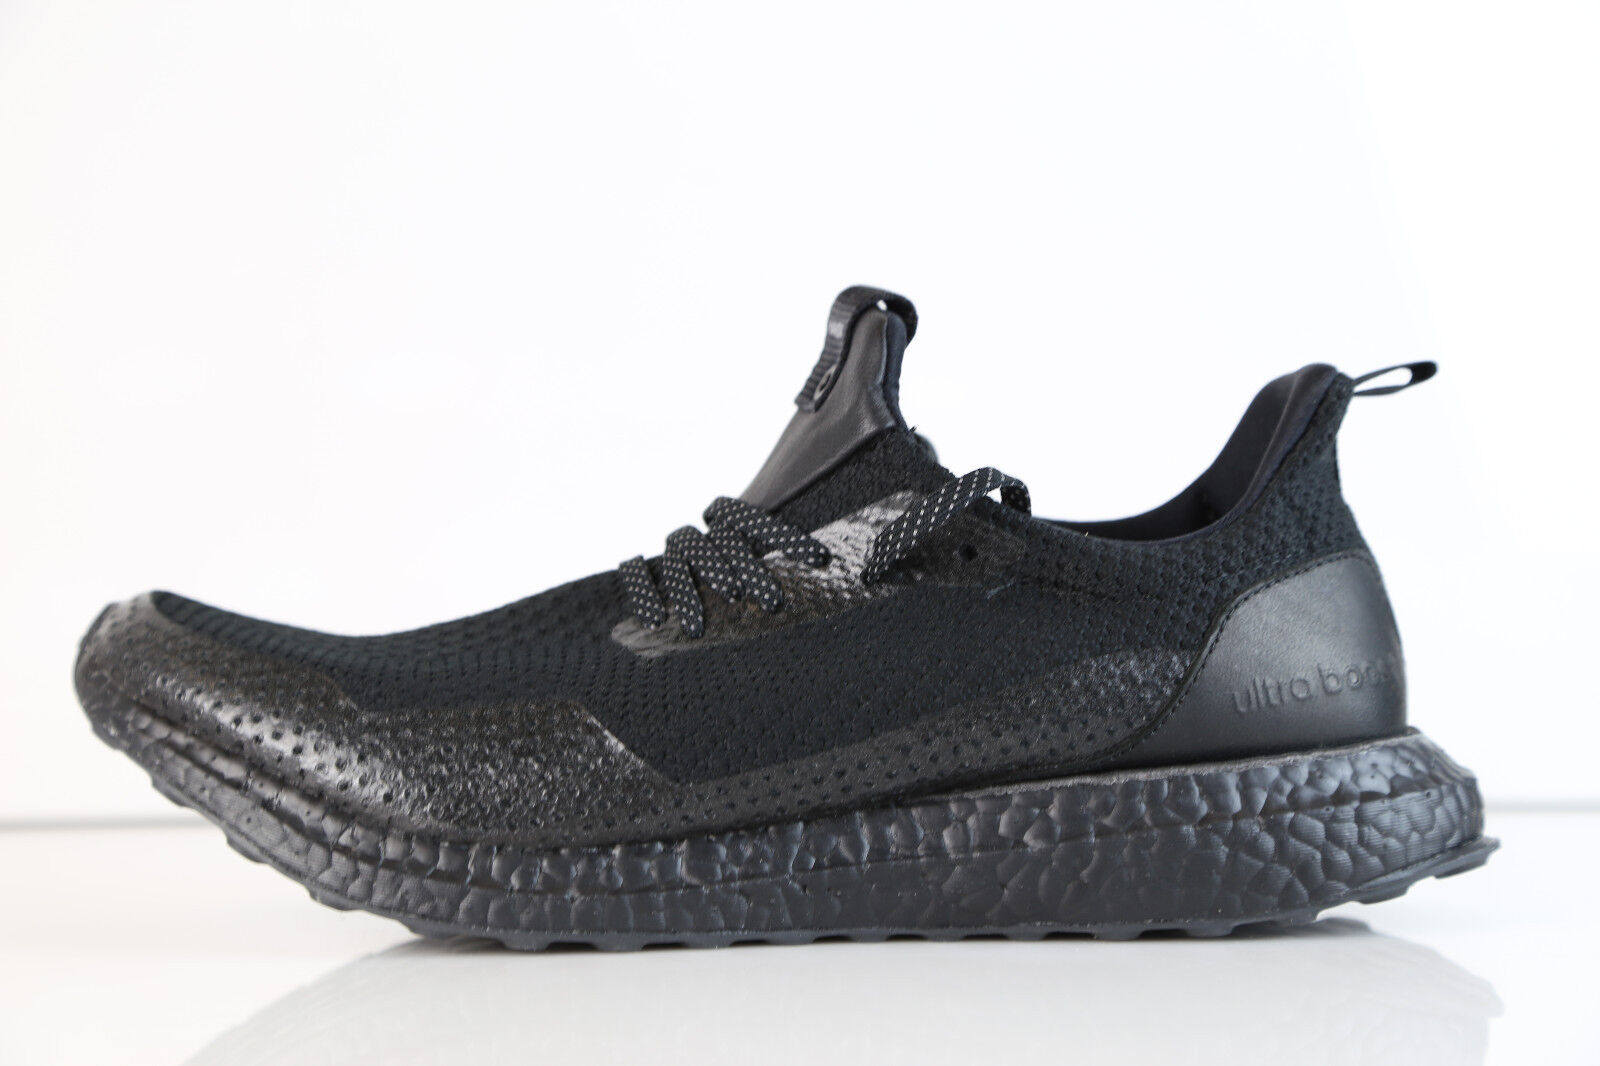 Adidas Consortium X Haven Ultra Boost Uncaged Triple Black BY2638 4 5-10.5 rf 1